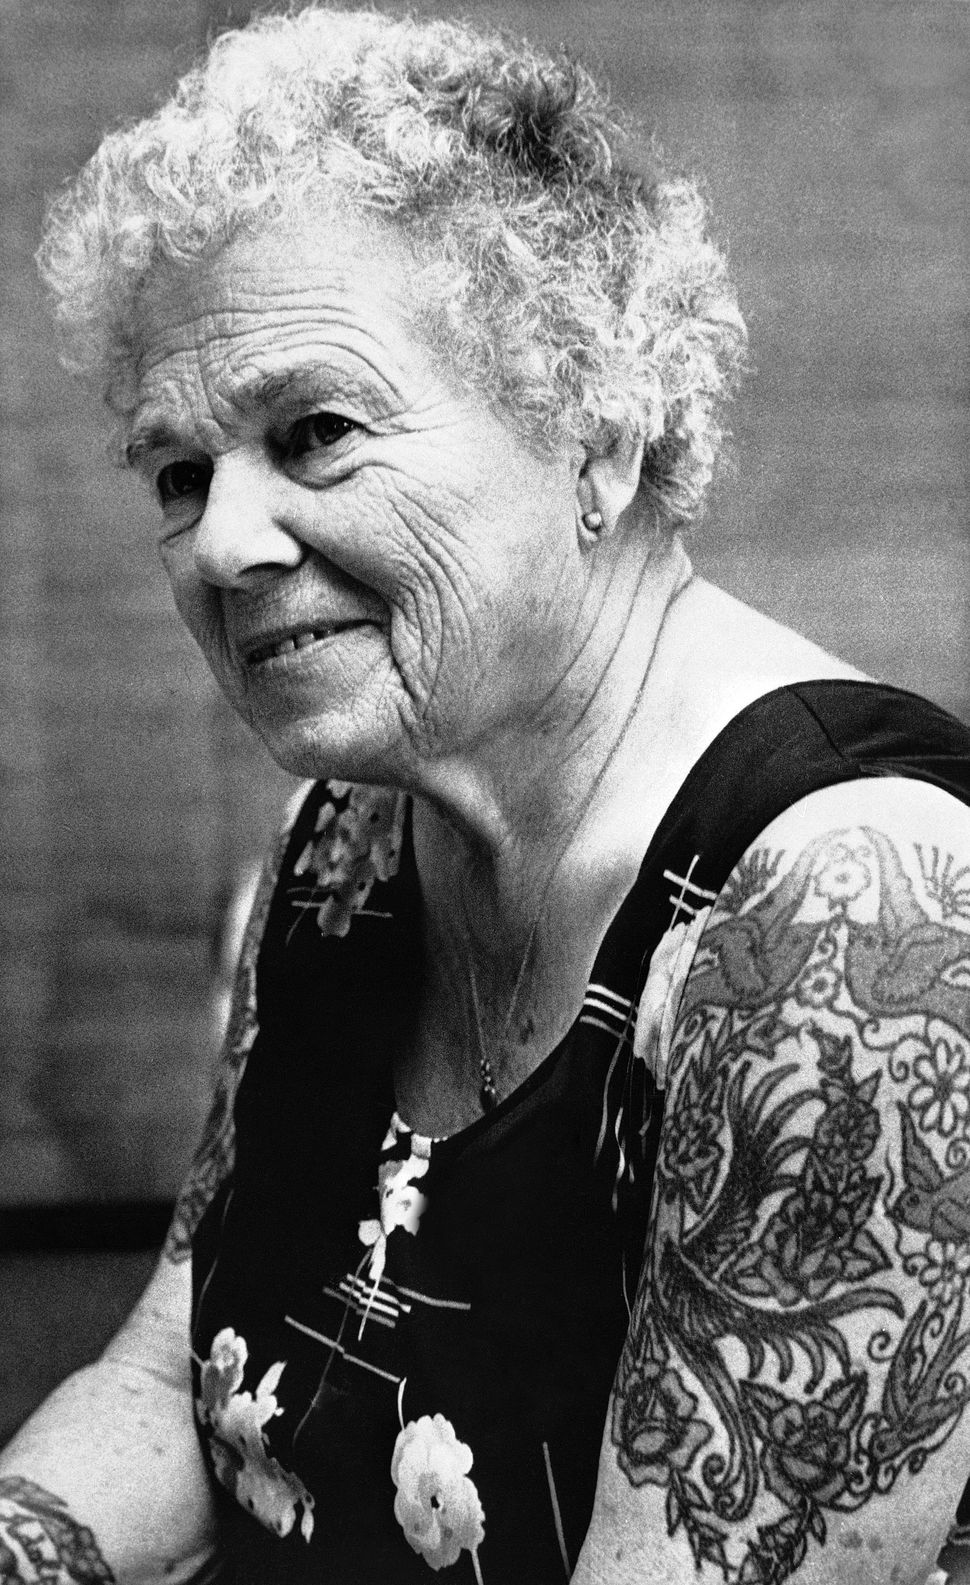 Elizabeth Weinzirl (pictured in Minneapolis 1978) has brightly colored tattoos winding around her body from her neck to her k